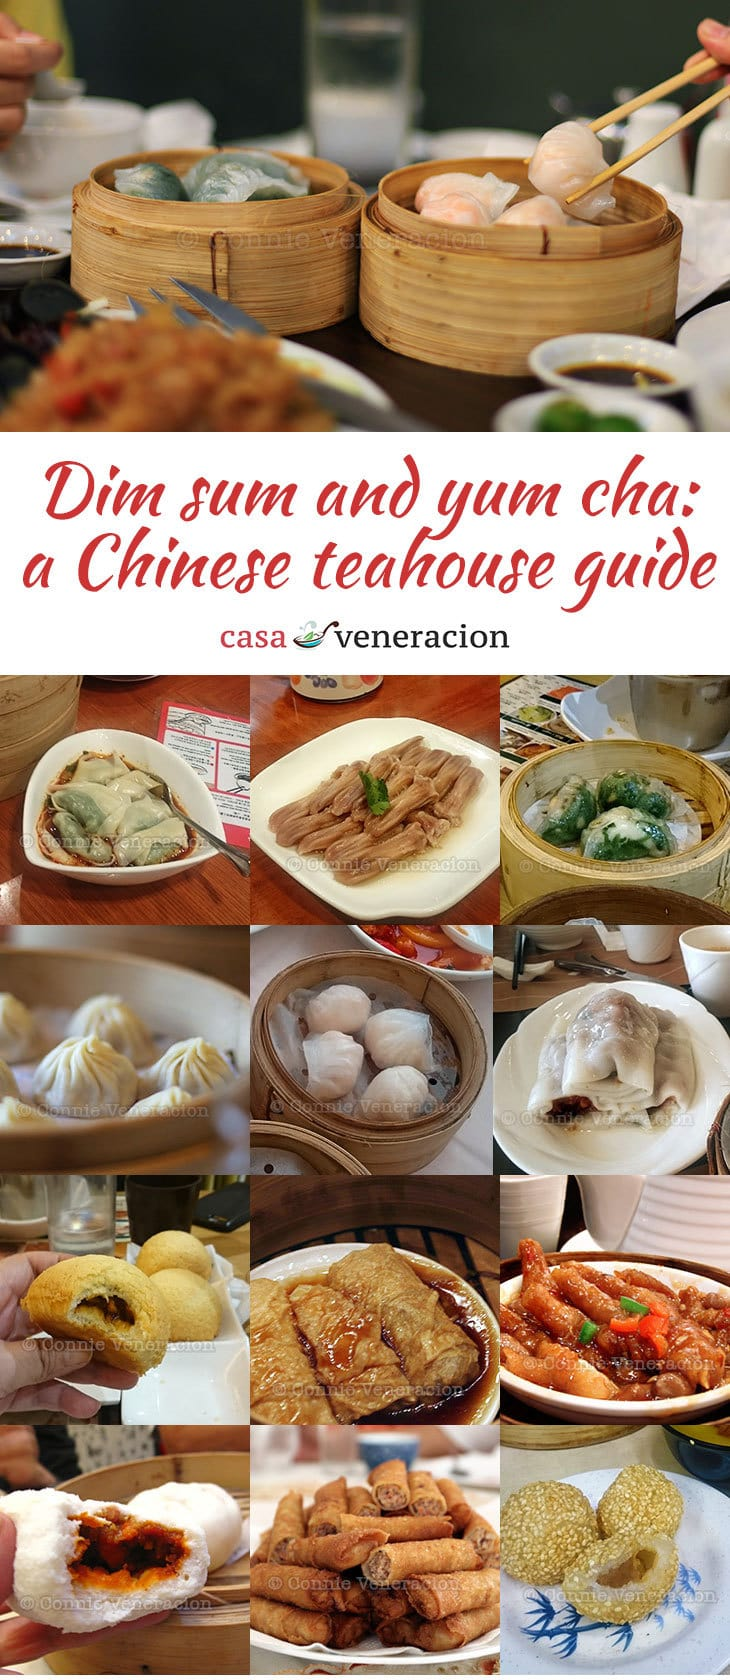 There are some 2,000 known dim sum dishes served around the world. From duck tongue to zongzi, some are steamed others fried and others are baked. Let's meet some of them.